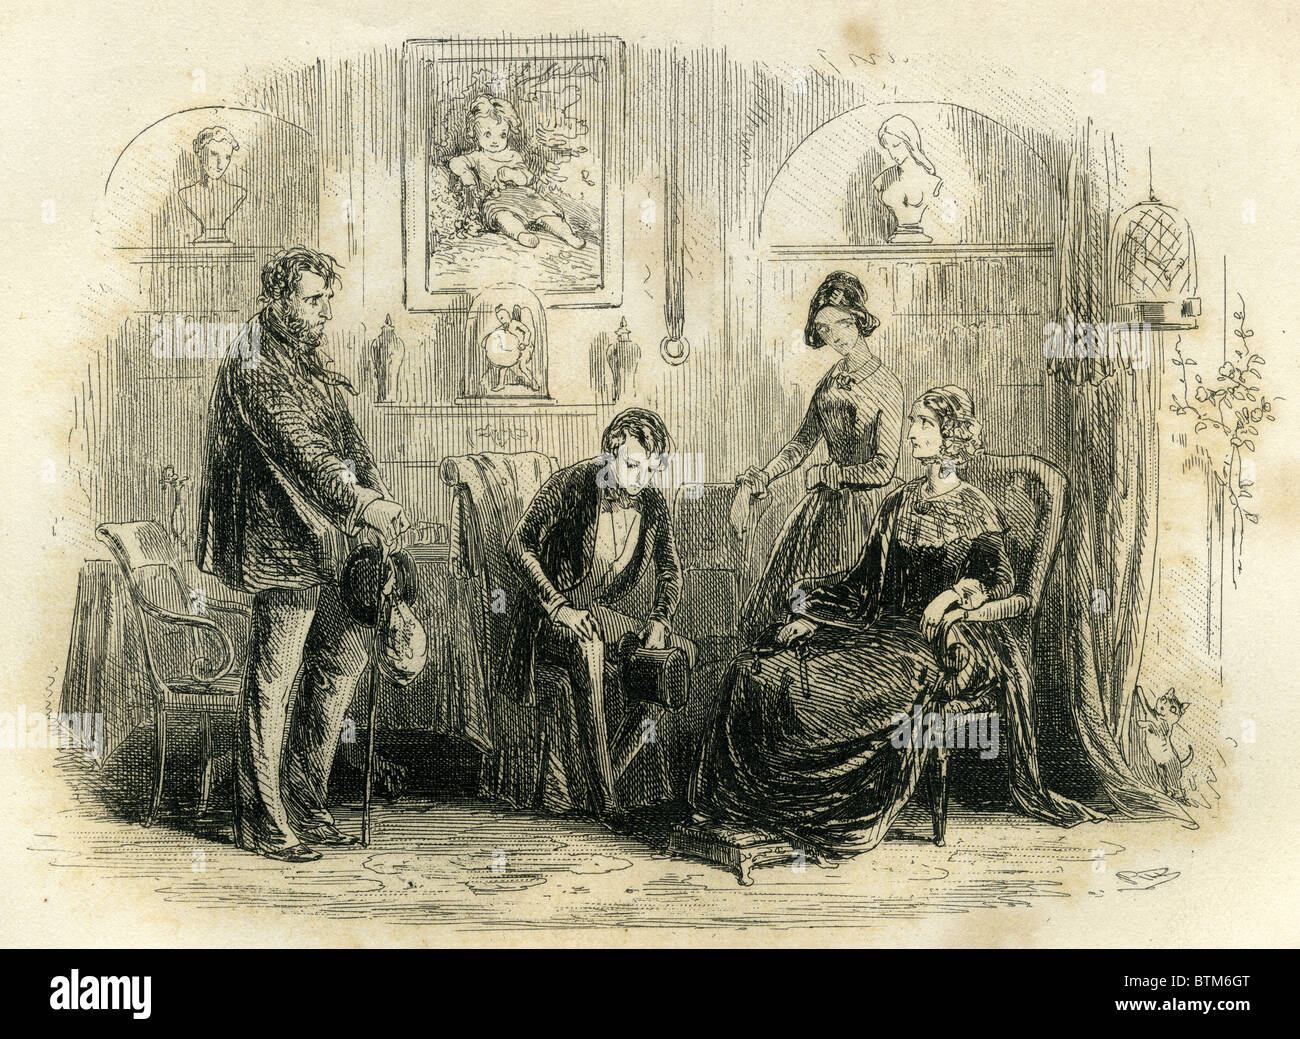 david copperfield mr peggotty and mrs steerforth stock photo david copperfield mr peggotty and mrs steerforth